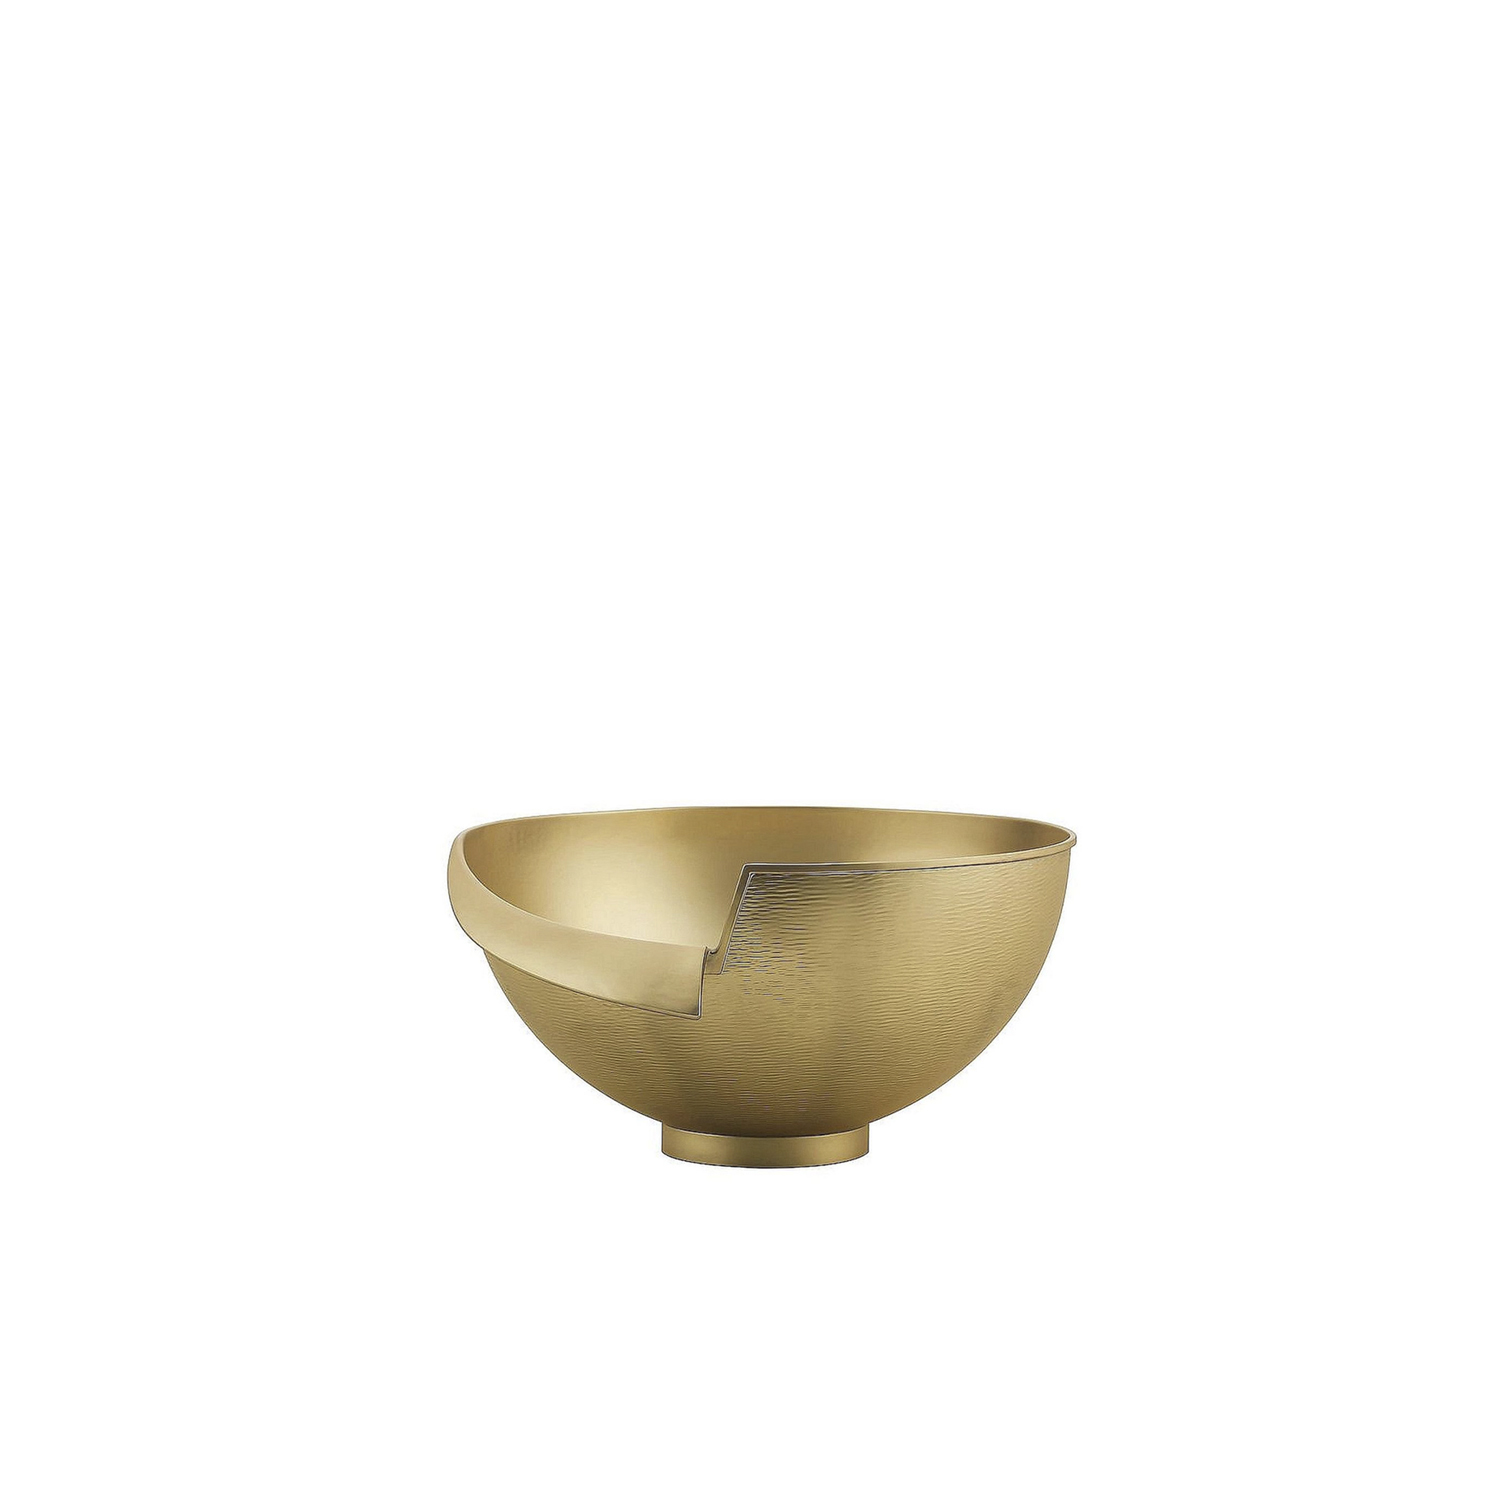 Intuizioni Bowl - This exquisite bowl is entirely made in brass with a satin finish. Its elegant silhouette is enhanced by the warm glow of this noble metal that has been modelled so that a portion of the top edge is curved on itself as if it was torn up. Part of the Masterpieces collection, this piece is one of a limited edition of numbered objects characterized by their innovative design. This versatile piece will be ideal in any décor and its strong personality will enhance the look of any room.  | Matter of Stuff